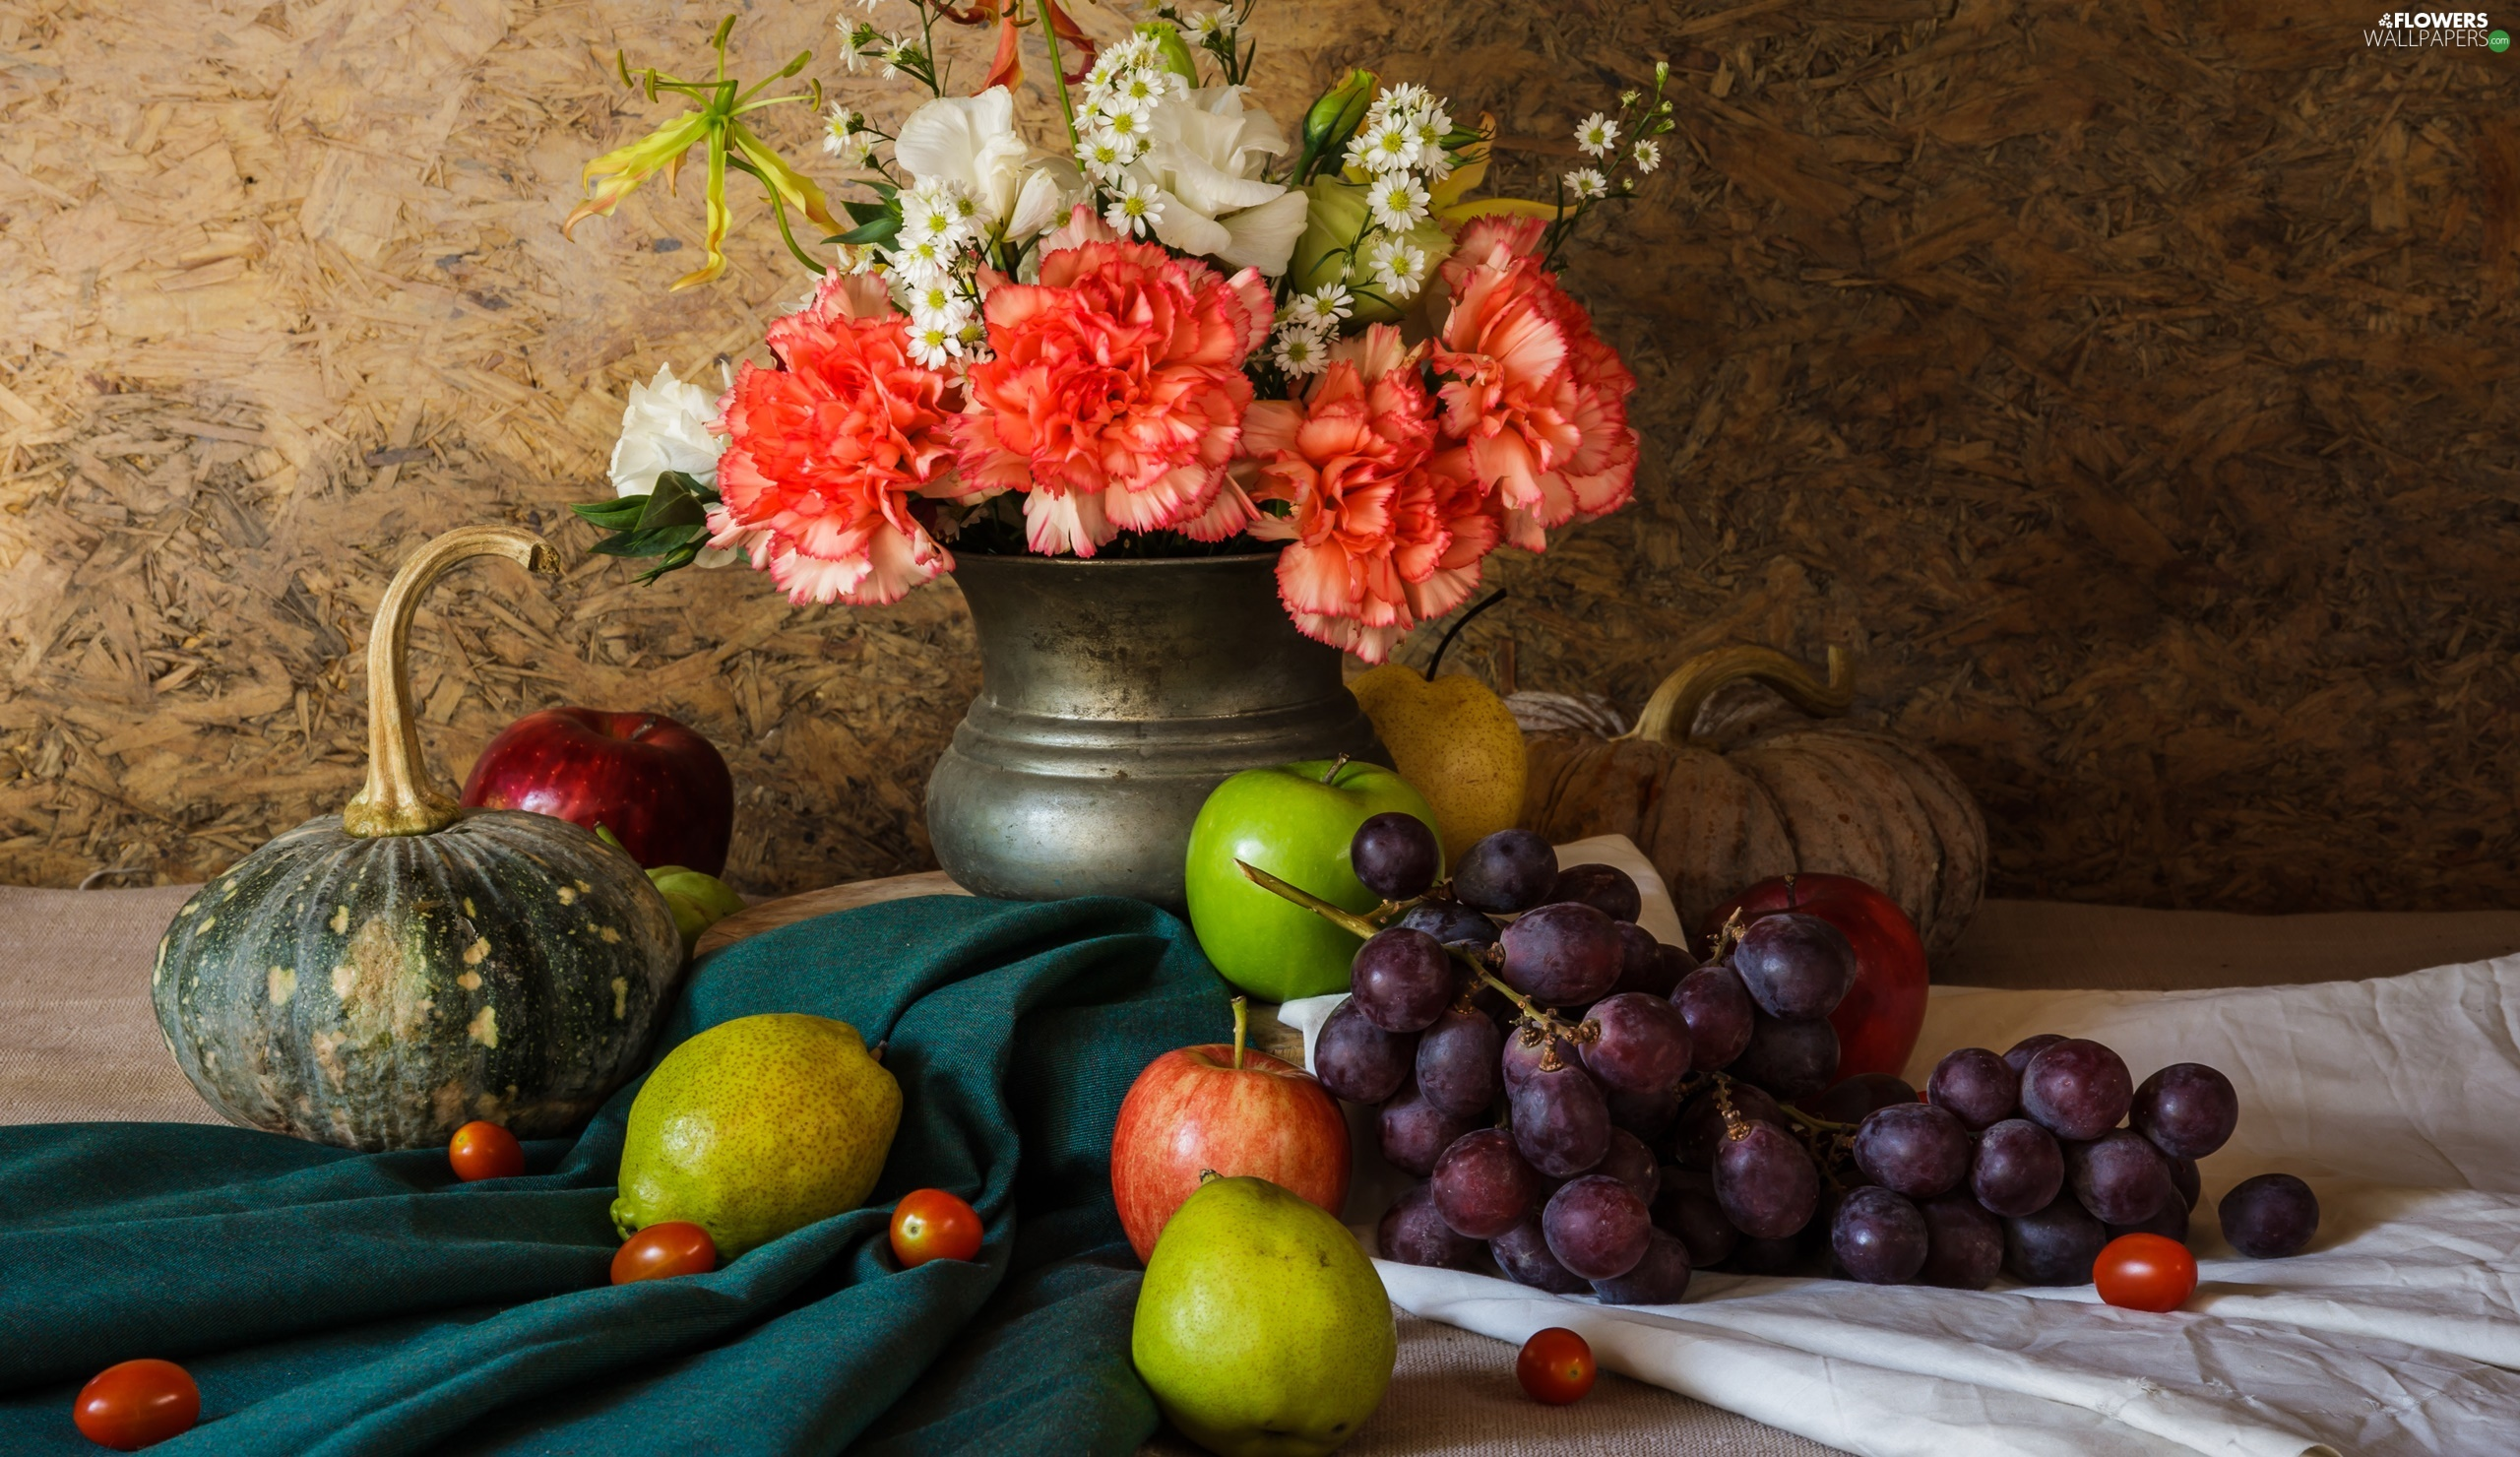 Fruits, Cloves, pumpkin, Vase, Flowers, Grapes, composition